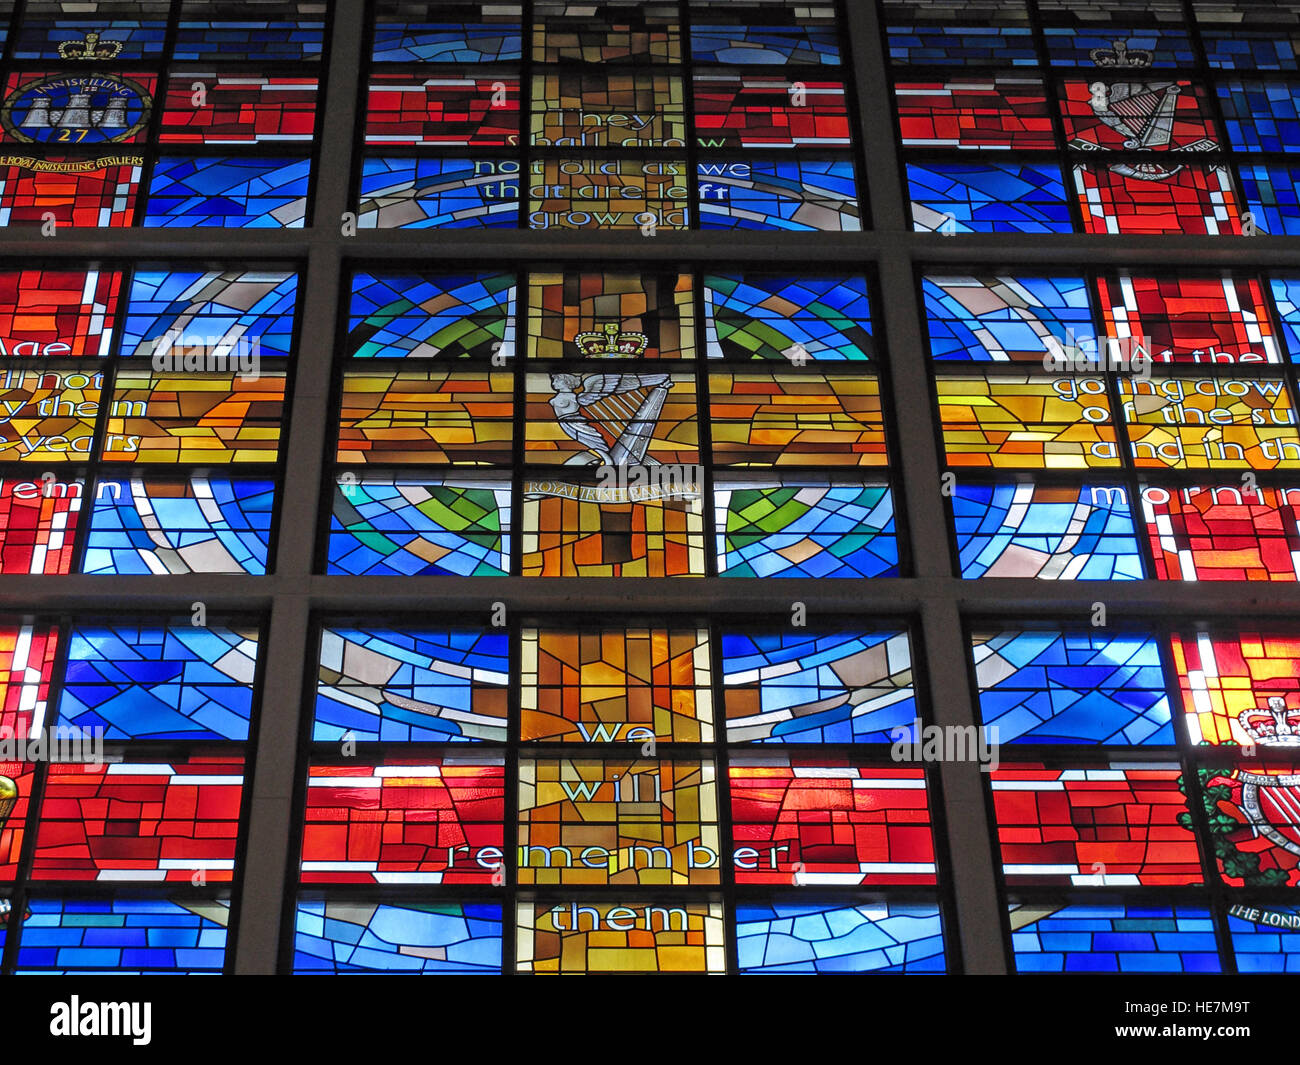 St Annes Belfast Cathedral Interior,Royal Irish Rangers Stained Glass Window - We will remember them - Stock Image